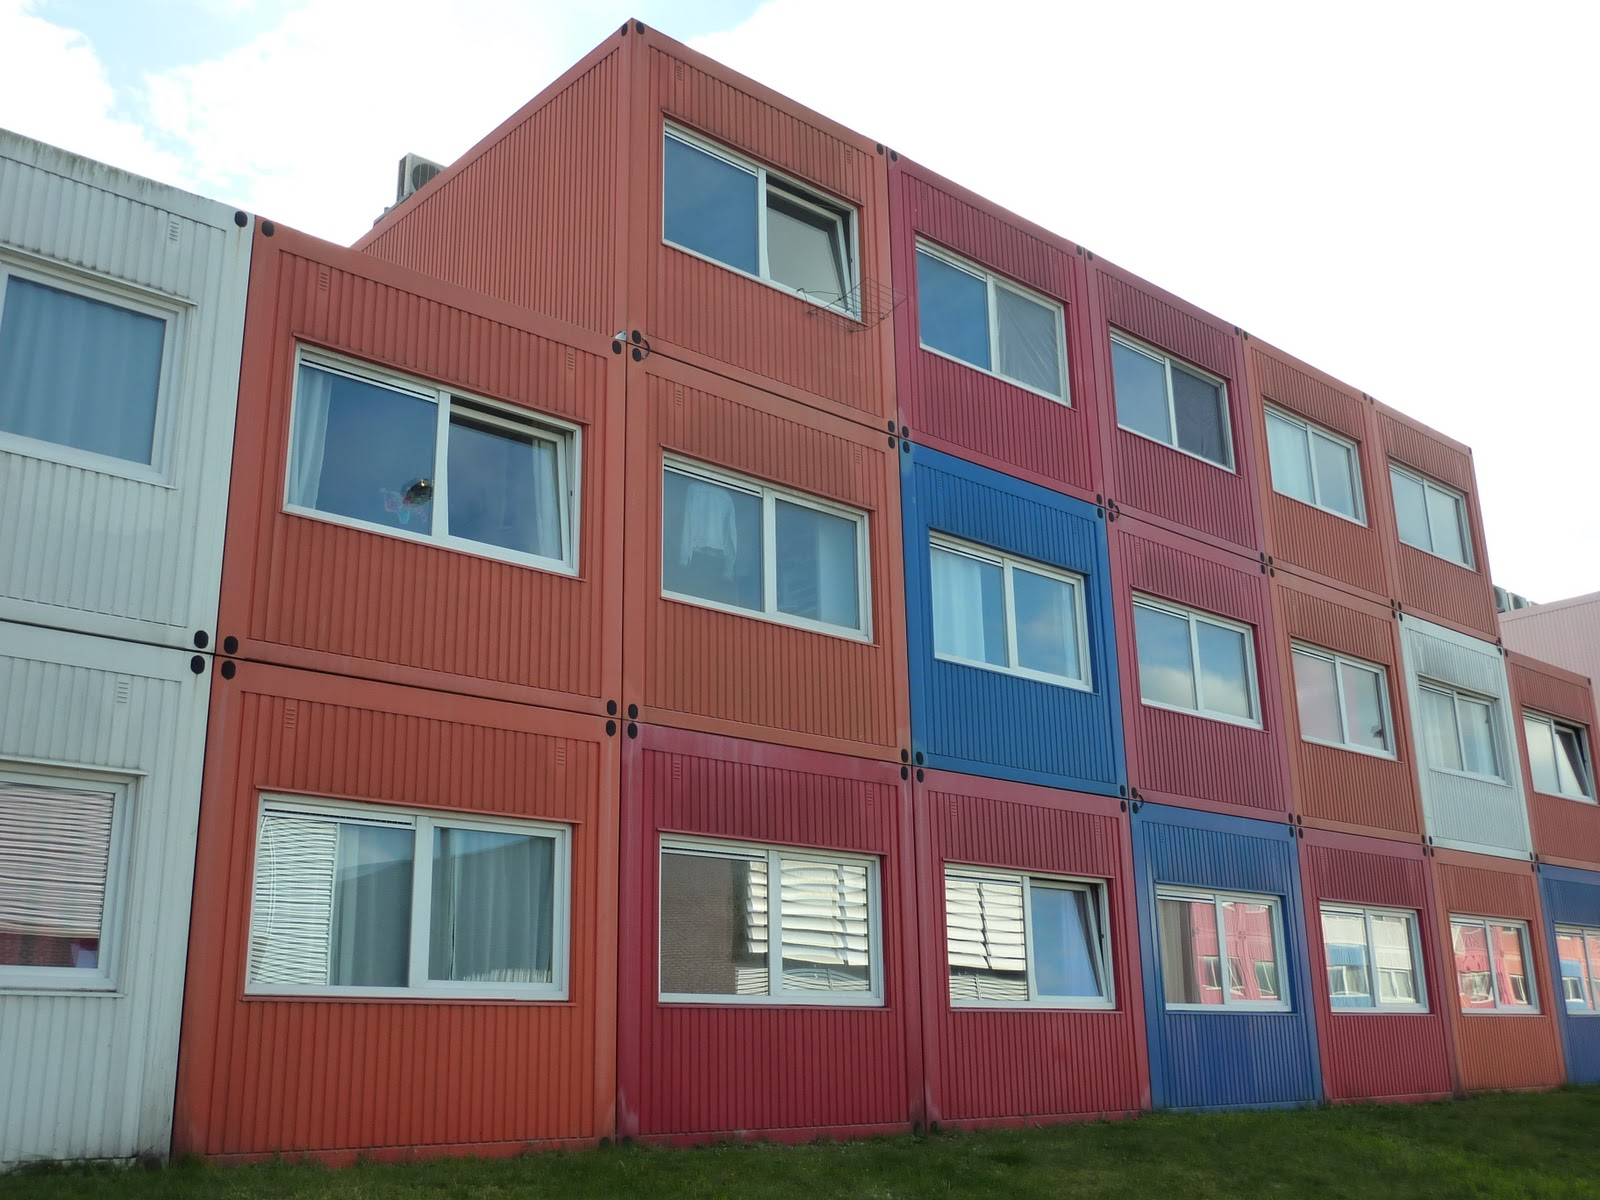 Greetings from holland shipping container houses amsterdam noord - Container homes london ...